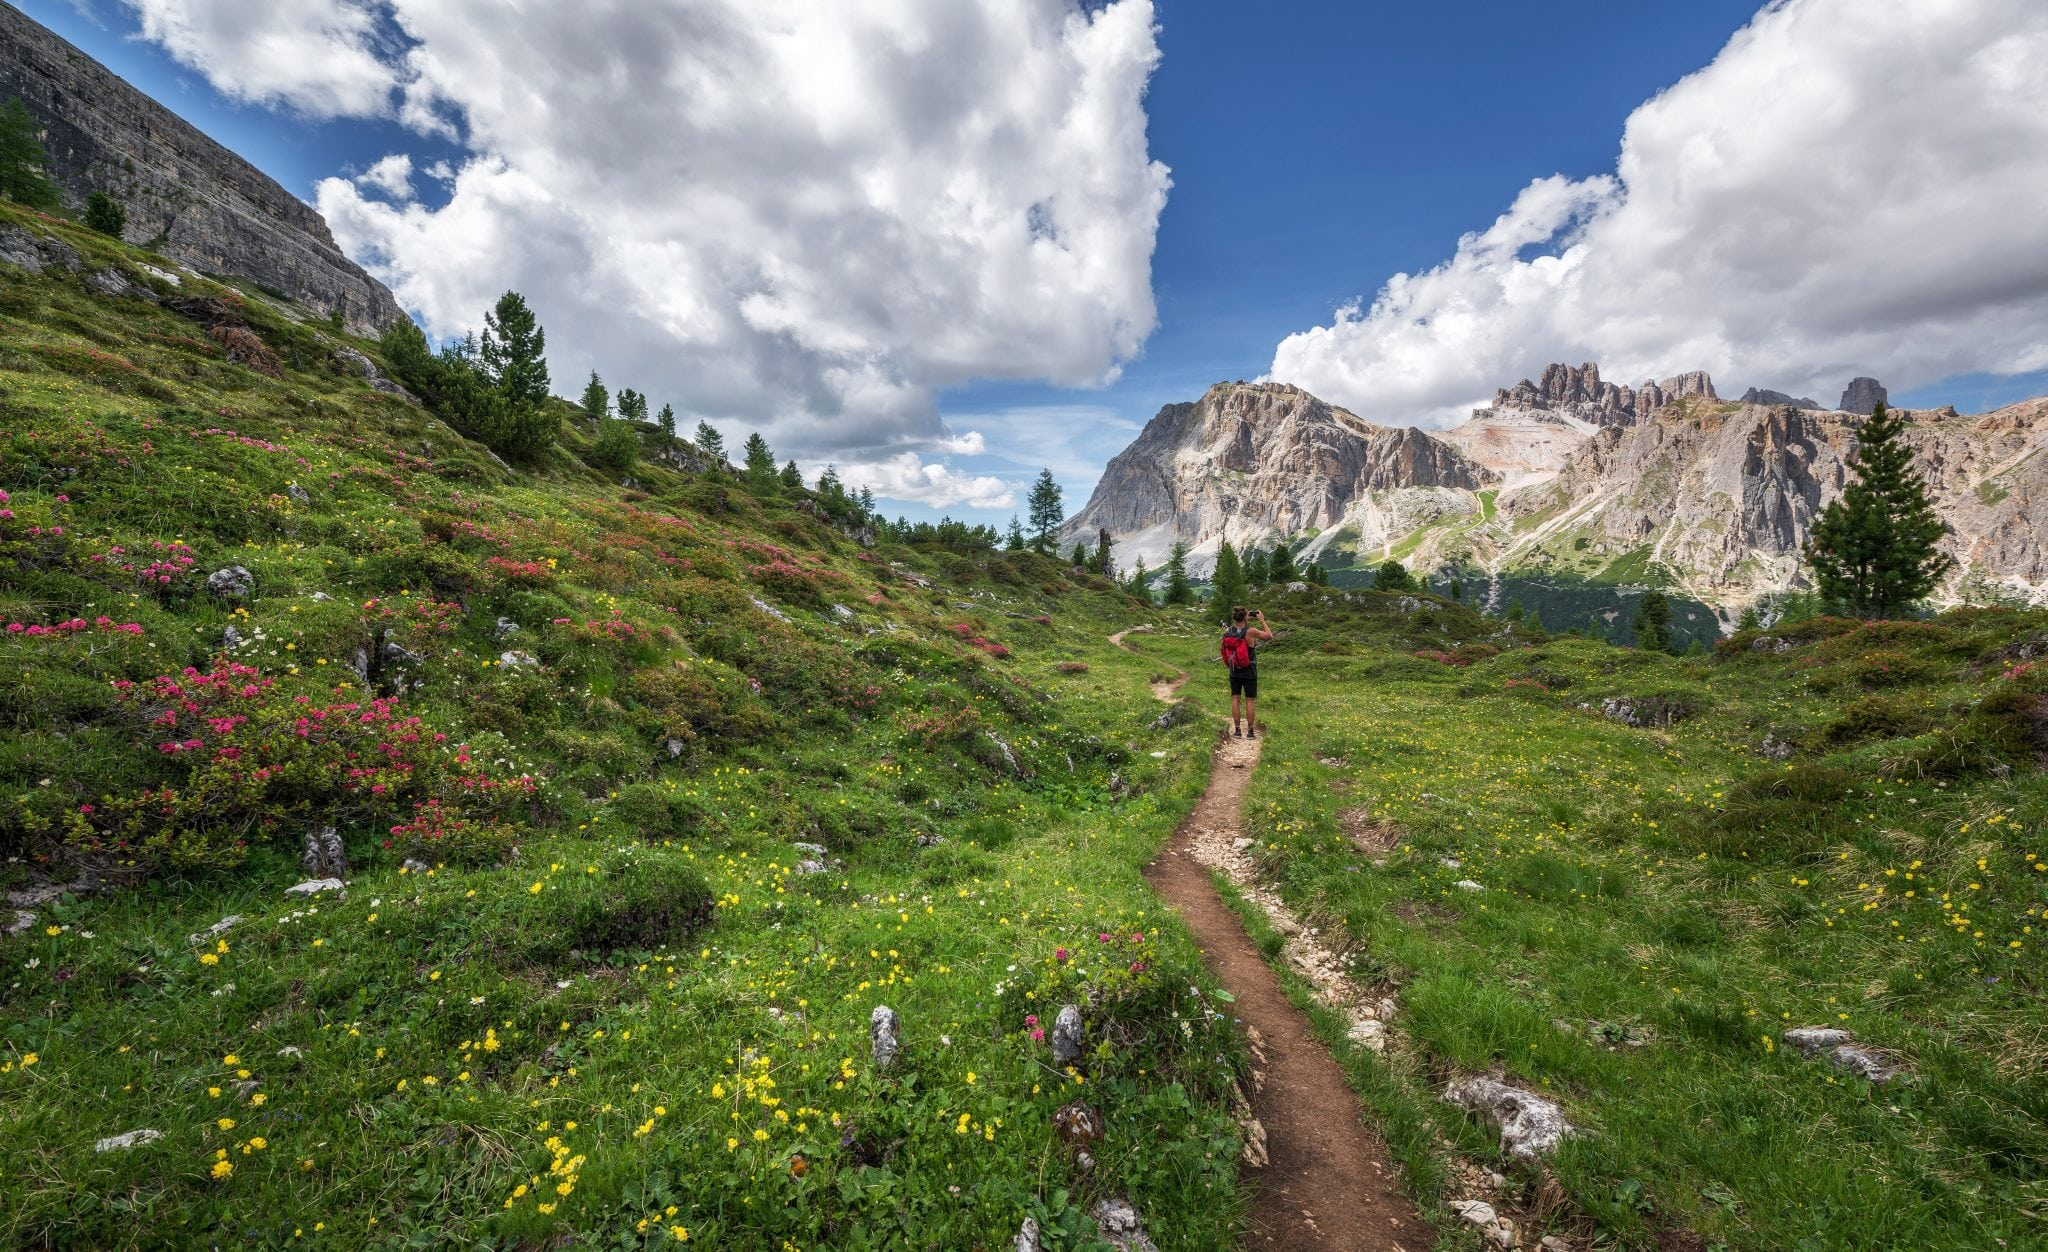 Looking to give trail running a try? Here are some great tips!